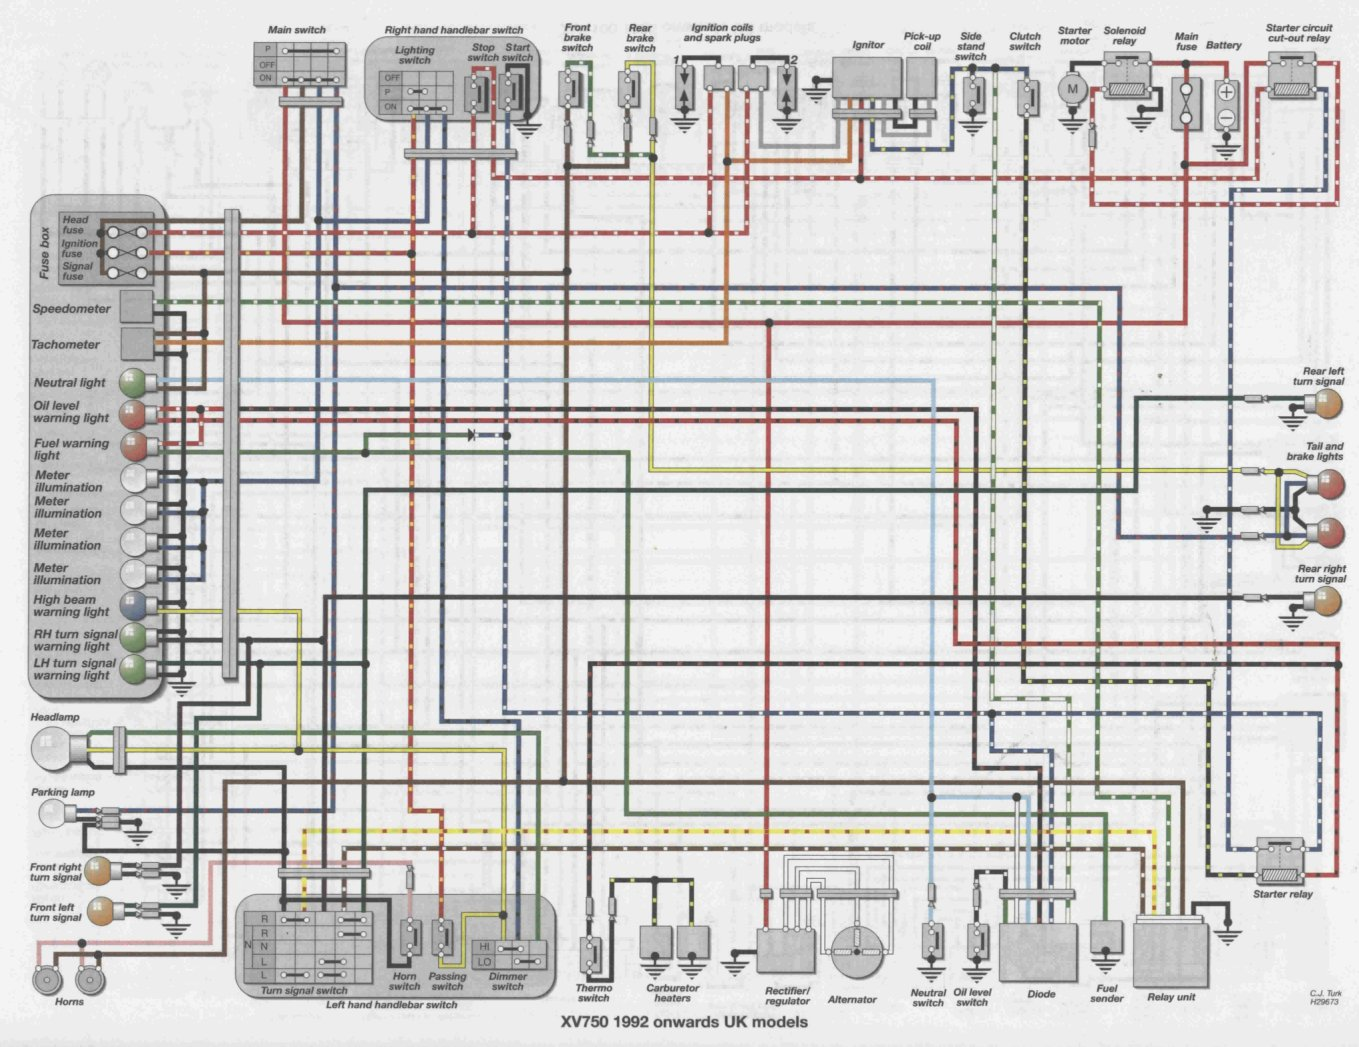 82 xv920 wiring diagram index of    wiring     index of    wiring